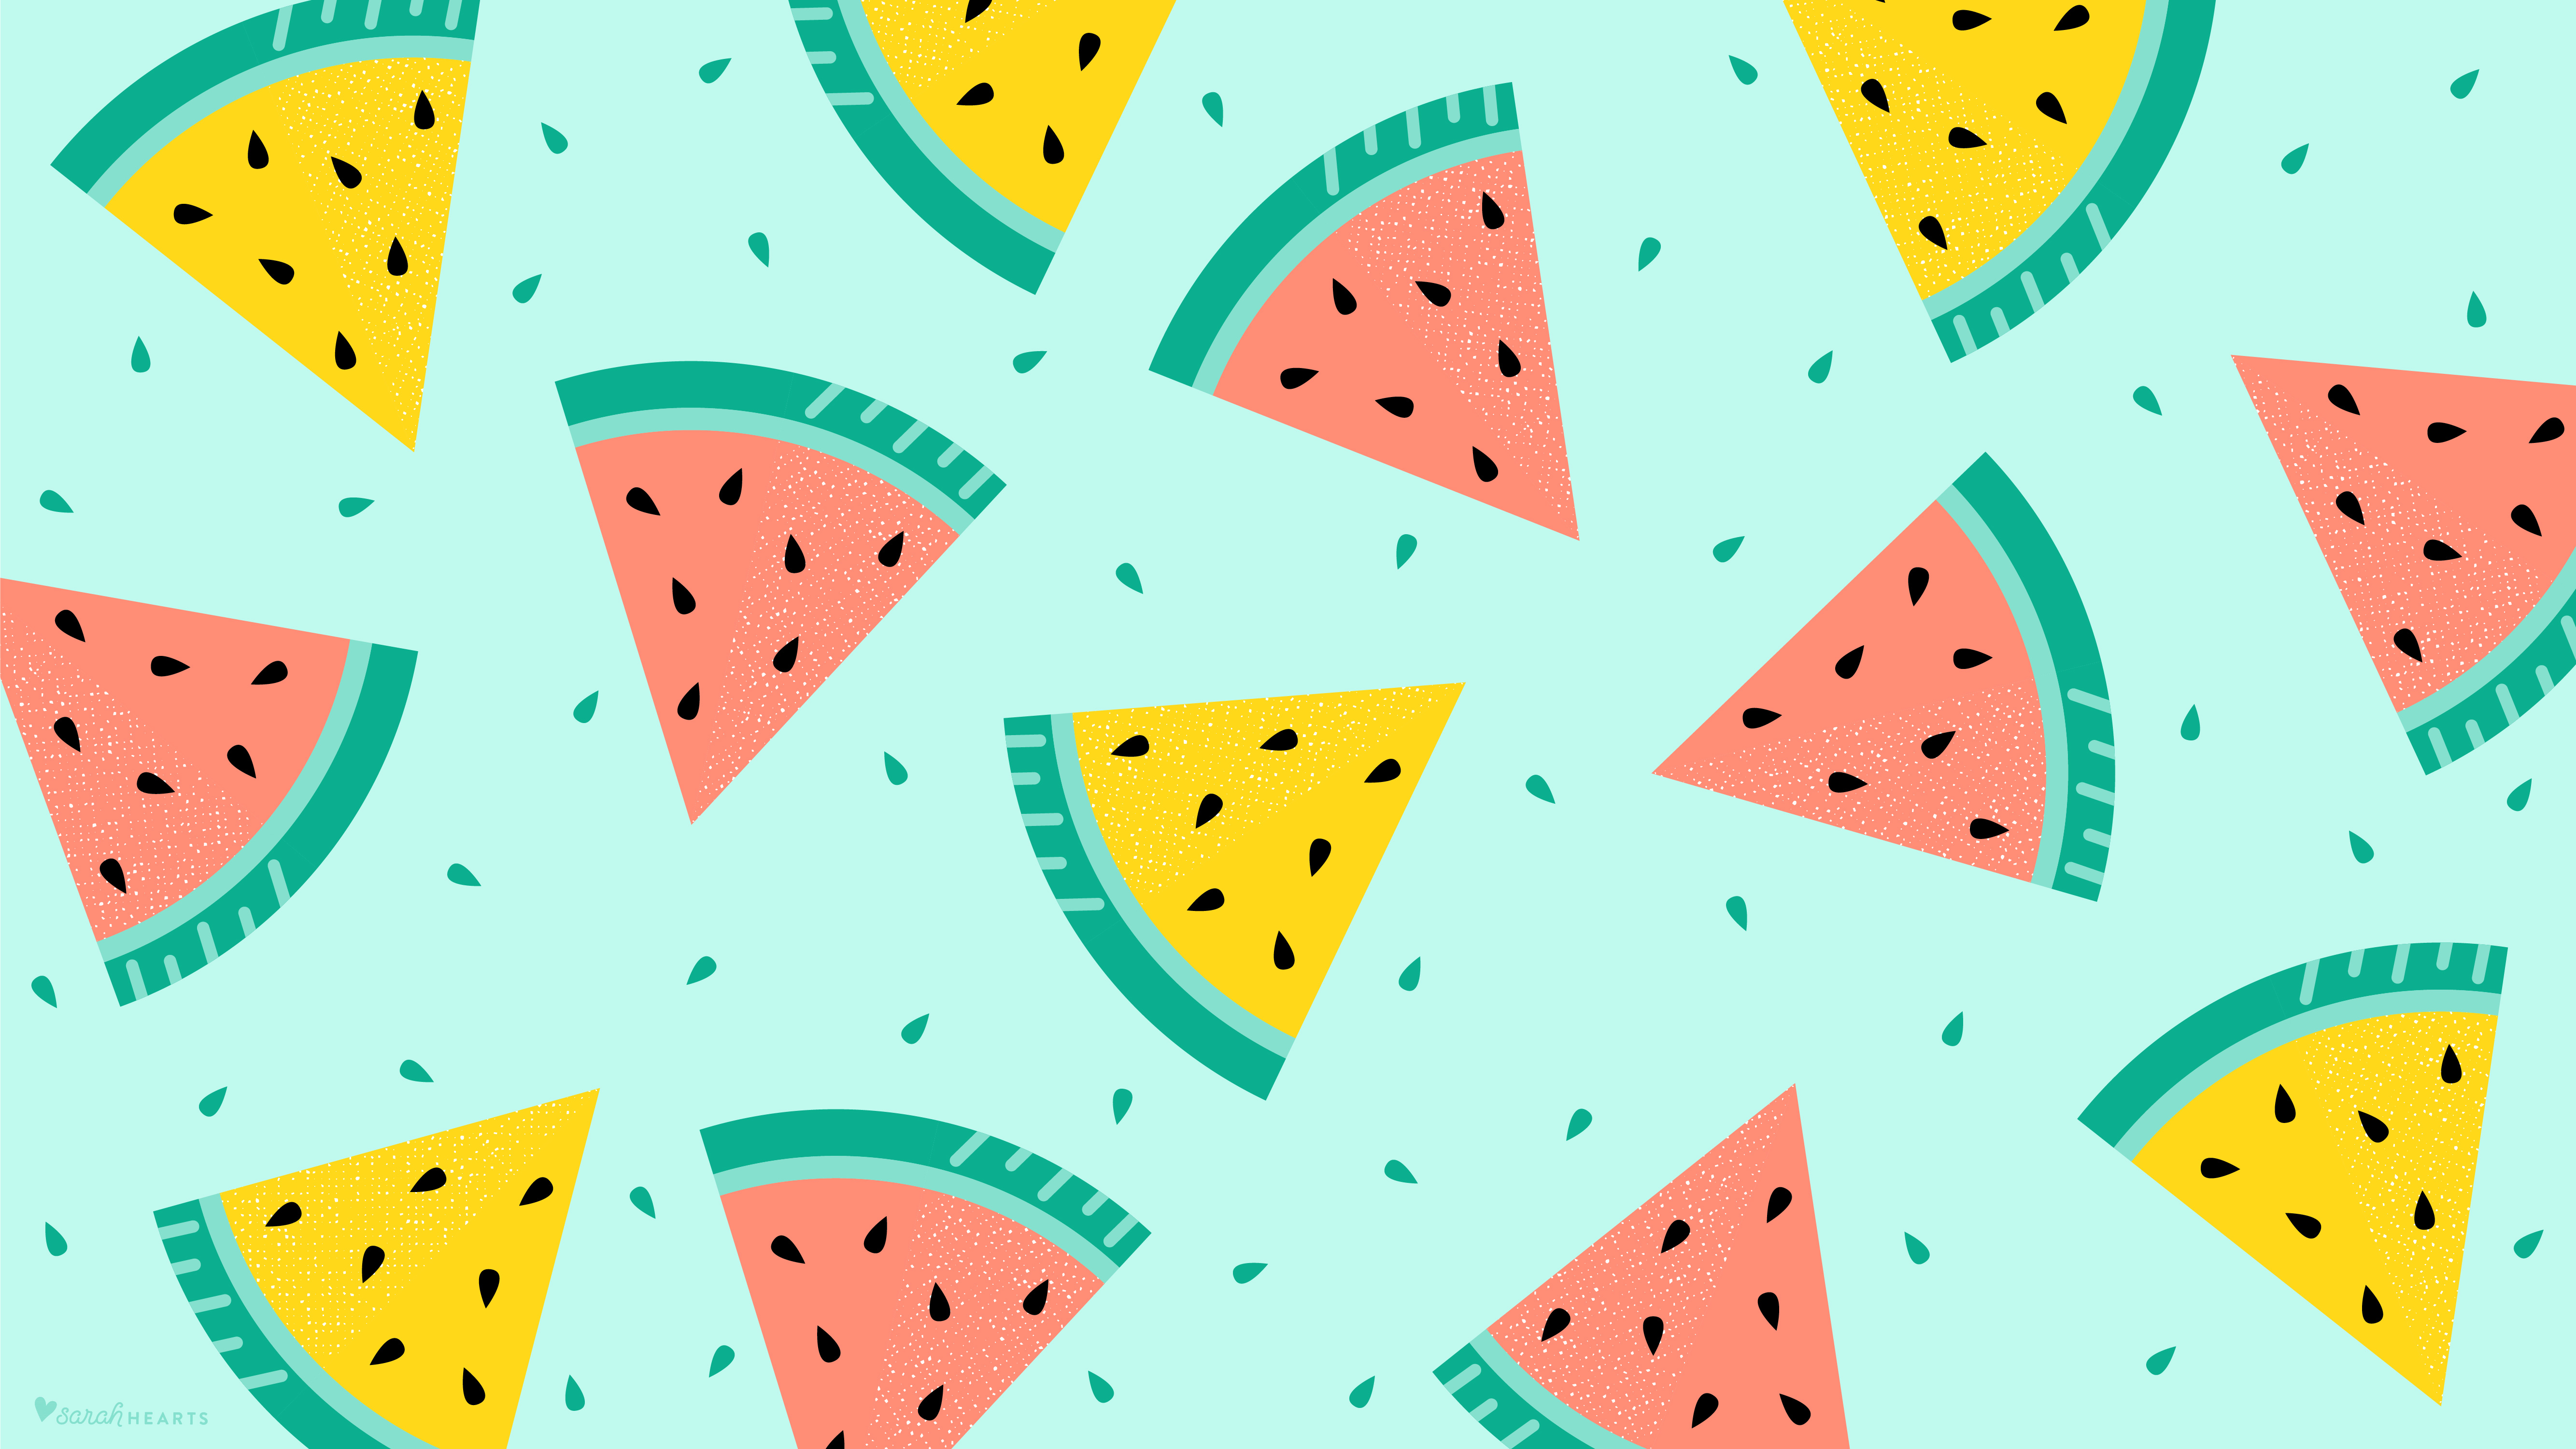 5334x3000 - Watermelon Wallpapers 27